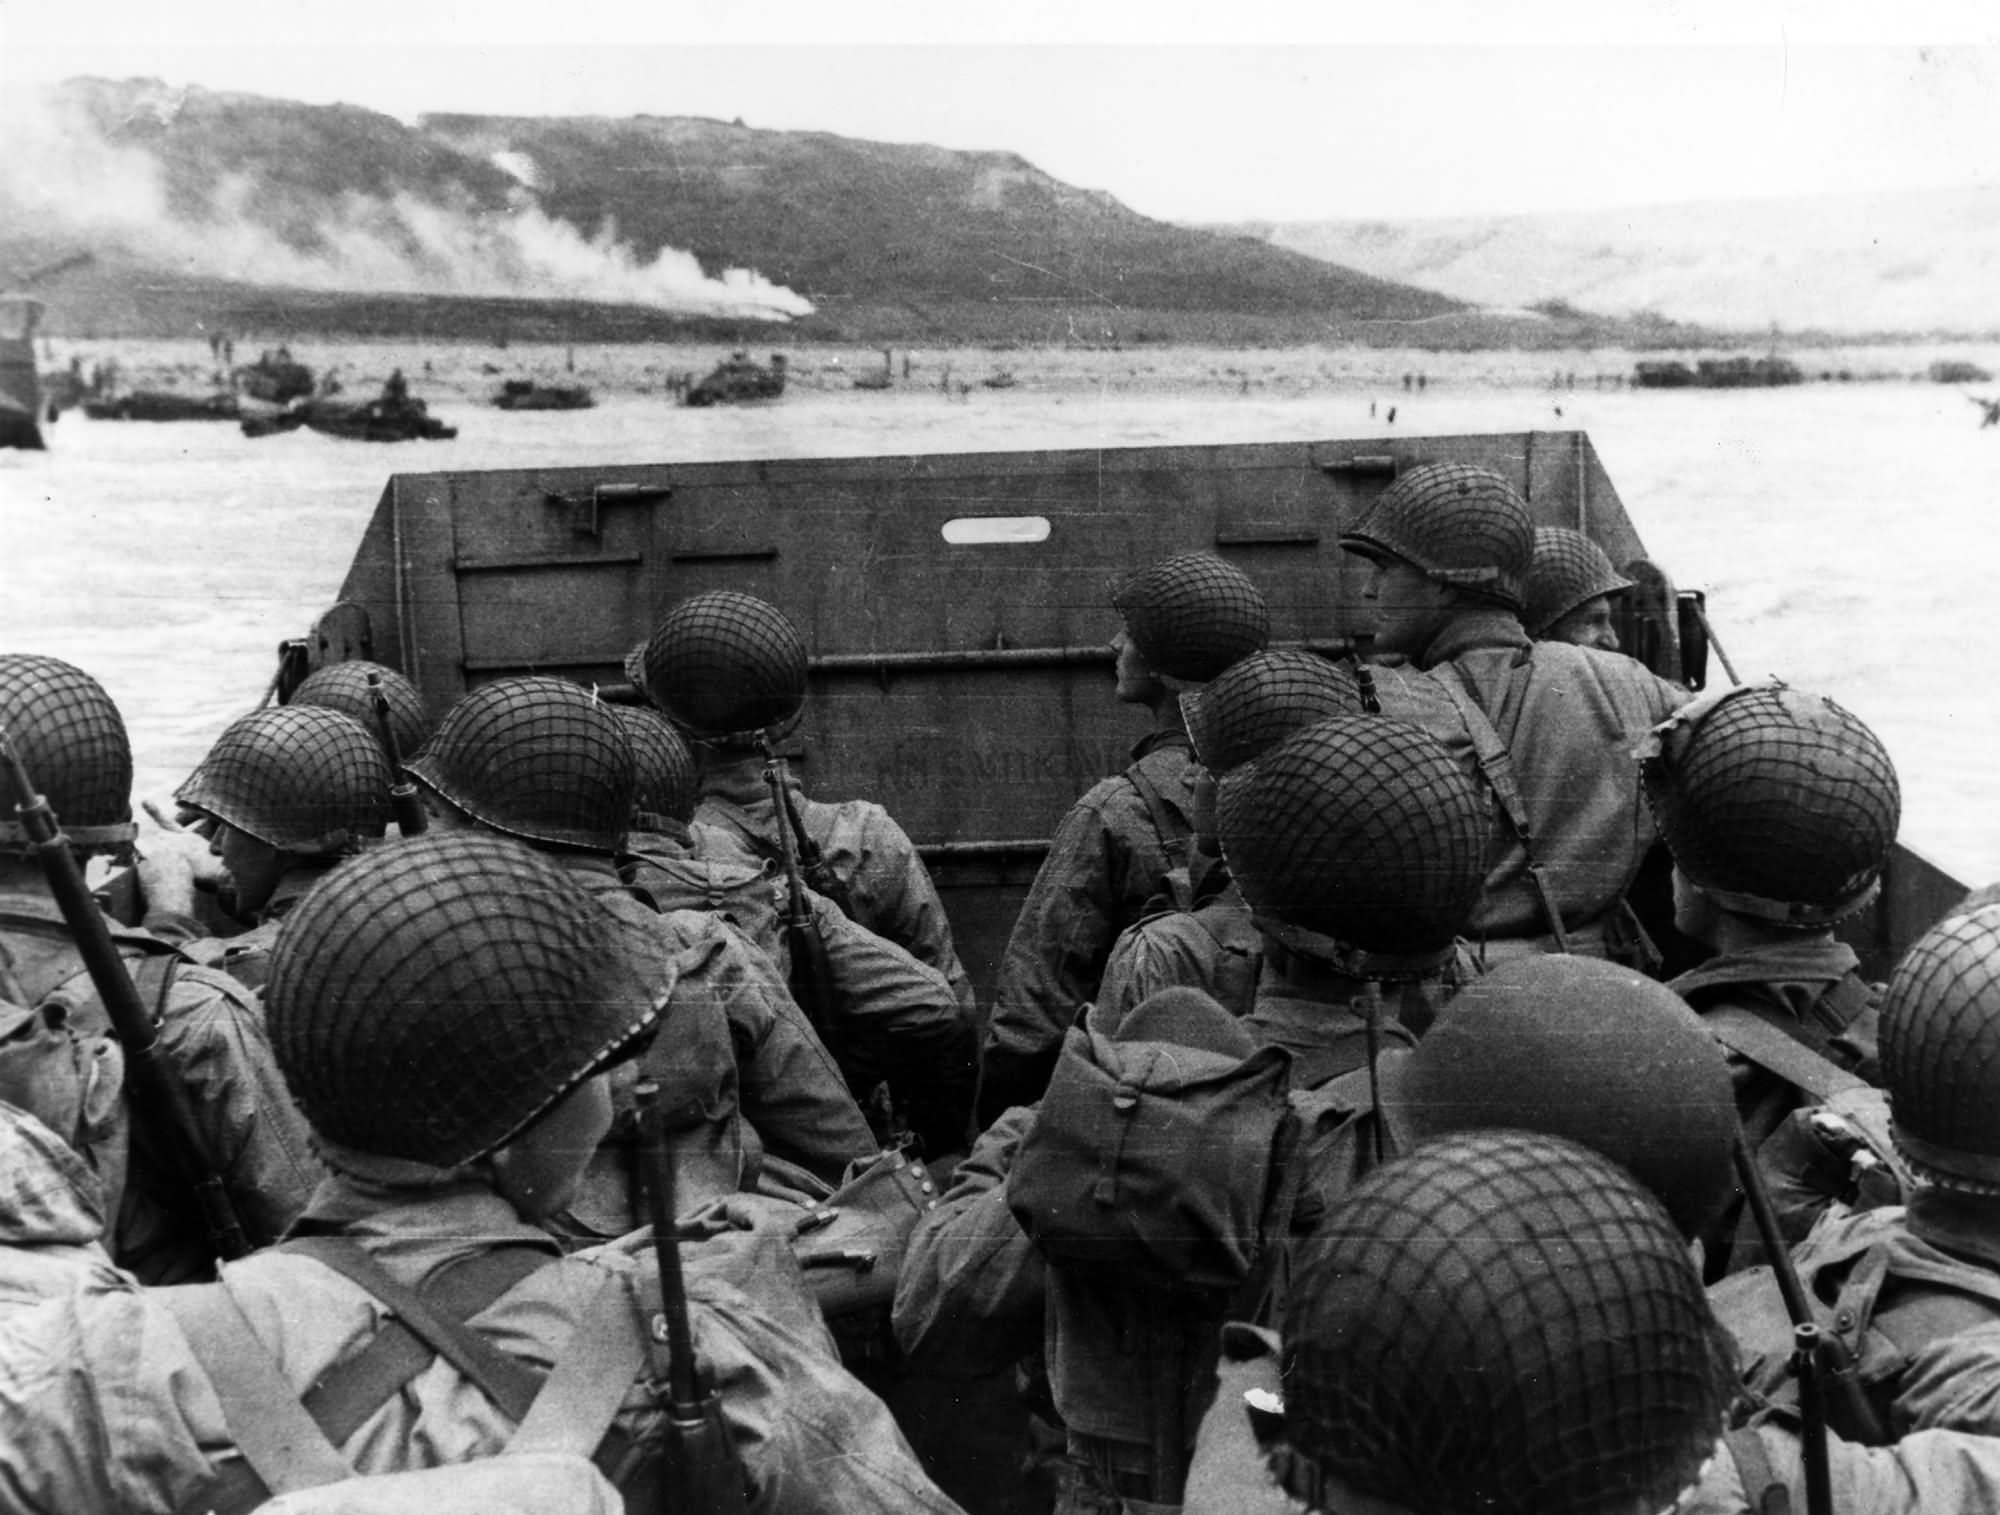 Troops in an LCVP landing craft approaching Omaha Beach on D Day 6 June 1944